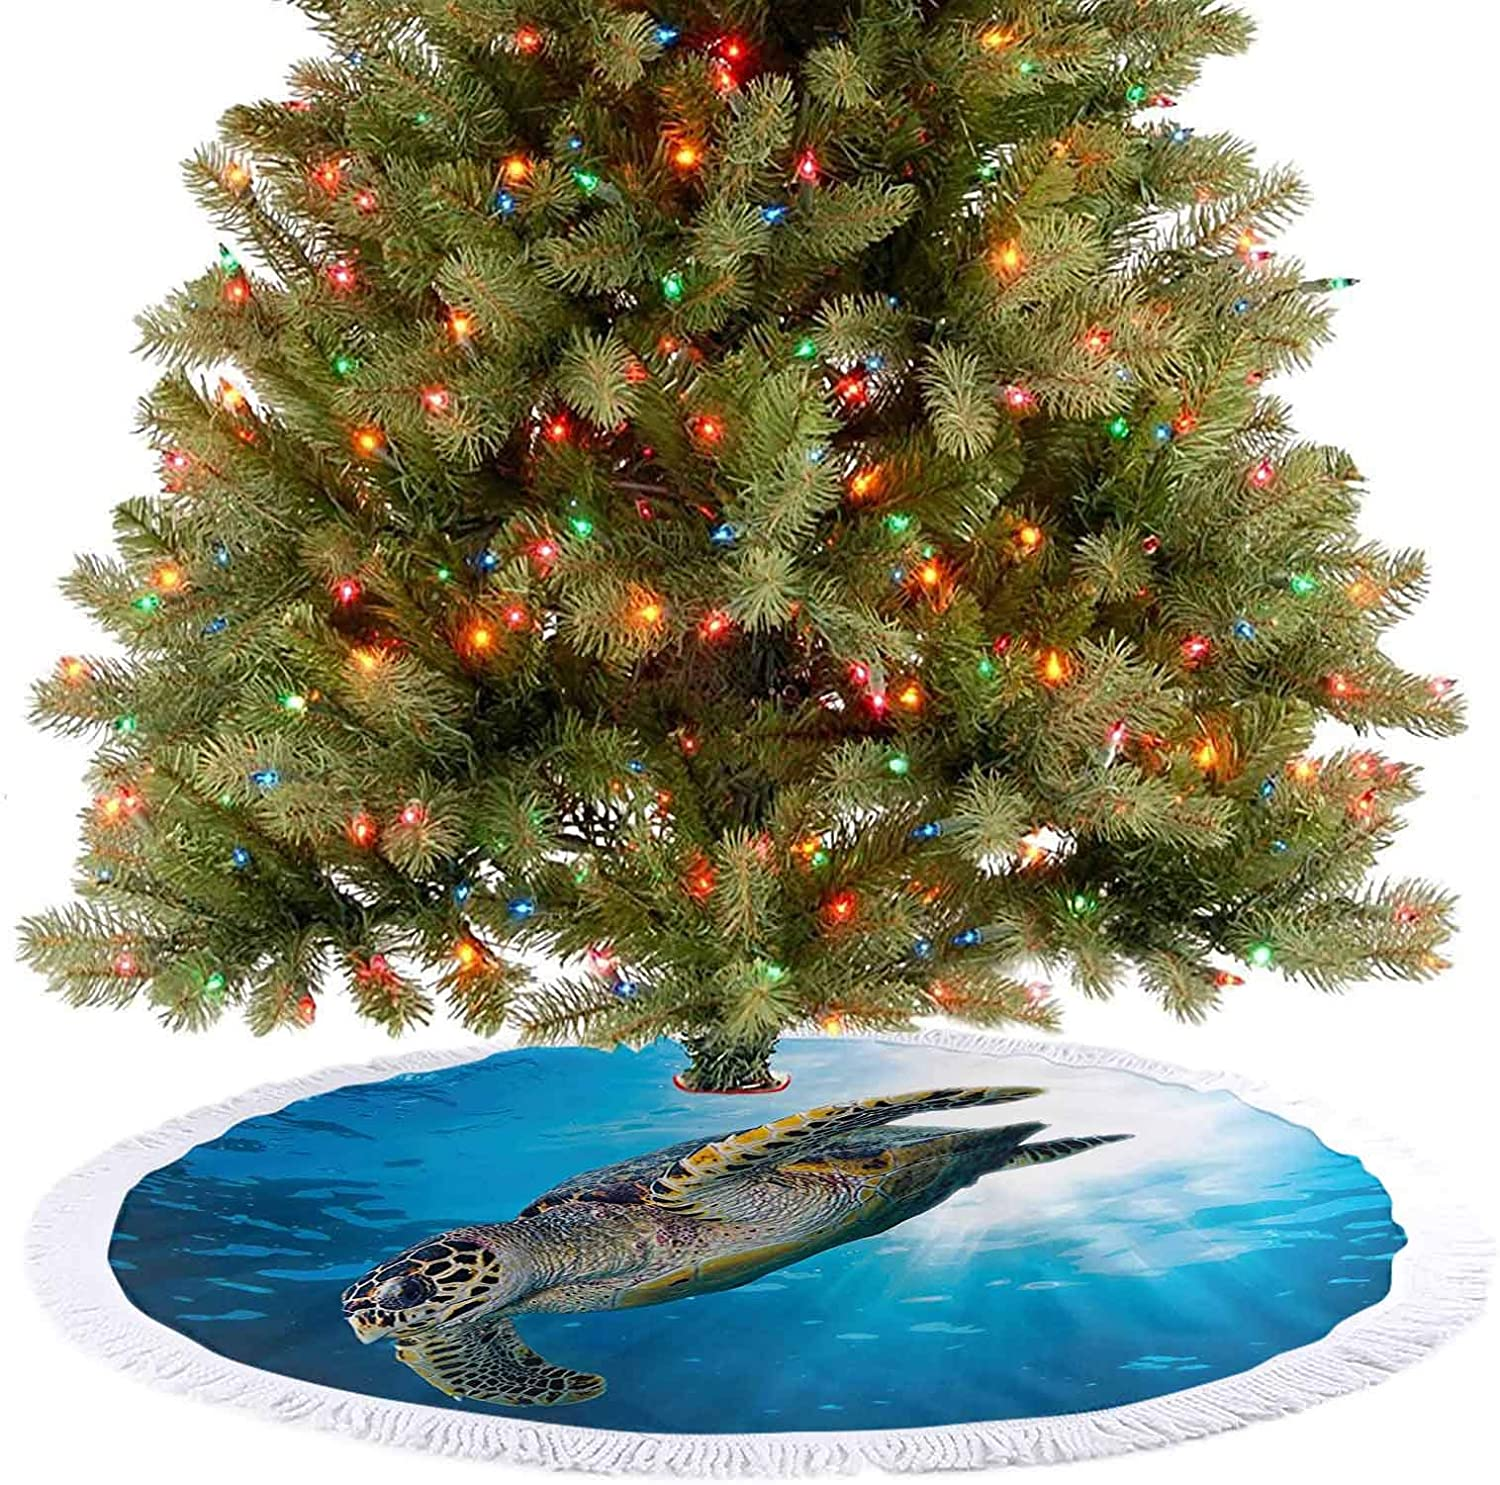 Tree Skirts Mat Sea Turtle Dive Deep Into The Blue Ocean Against Sun Rays Yellow Brown Xmas Tree Holiday Decorations Adds Warm and Charming Folksy Look to The Tree - 30 Inch